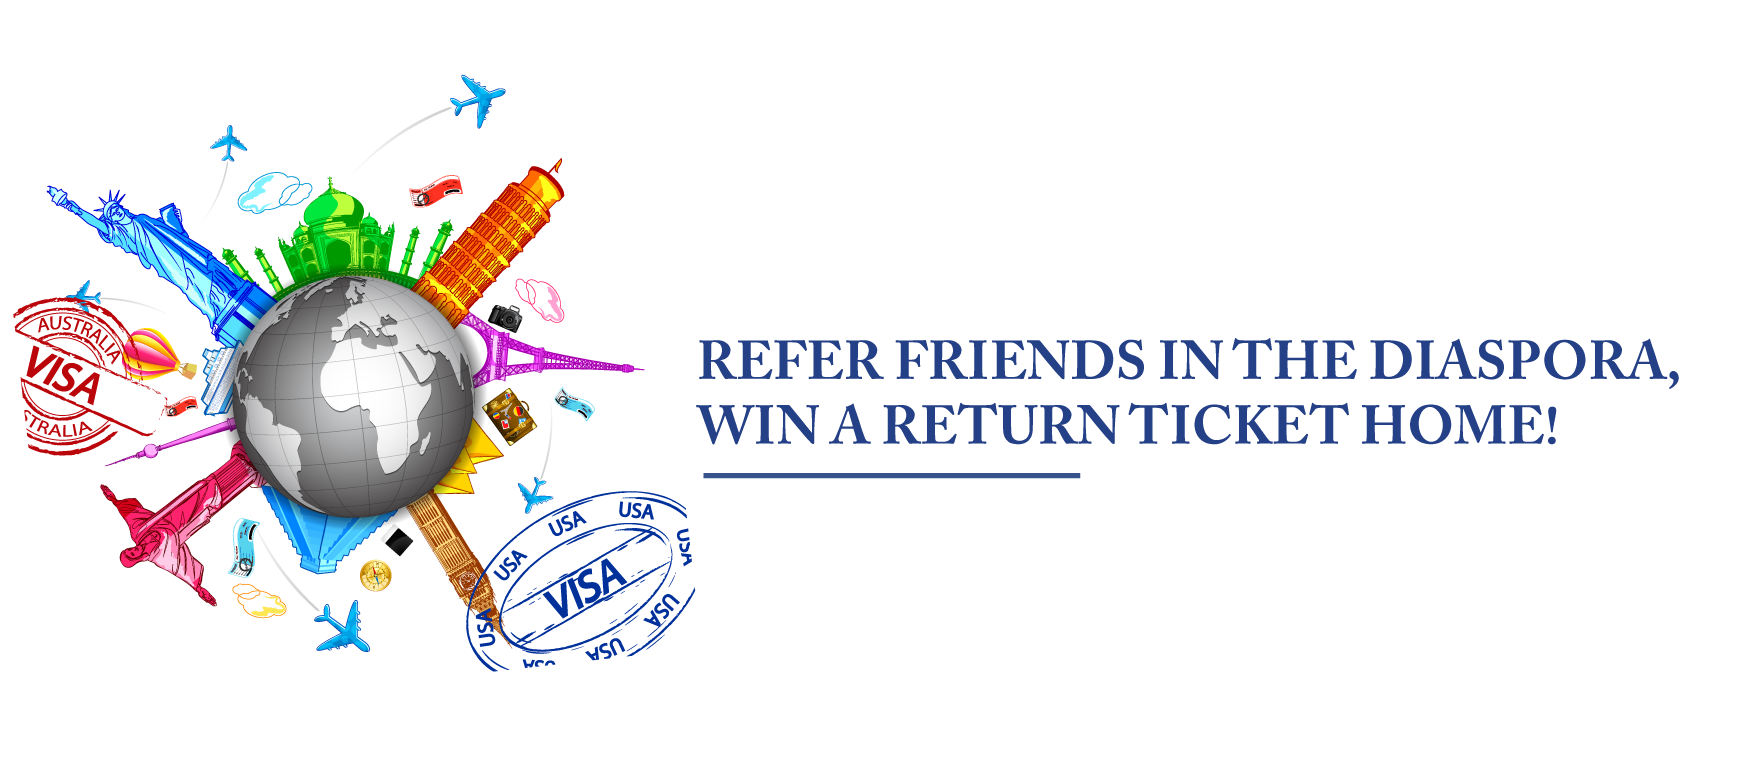 Refer friends and win